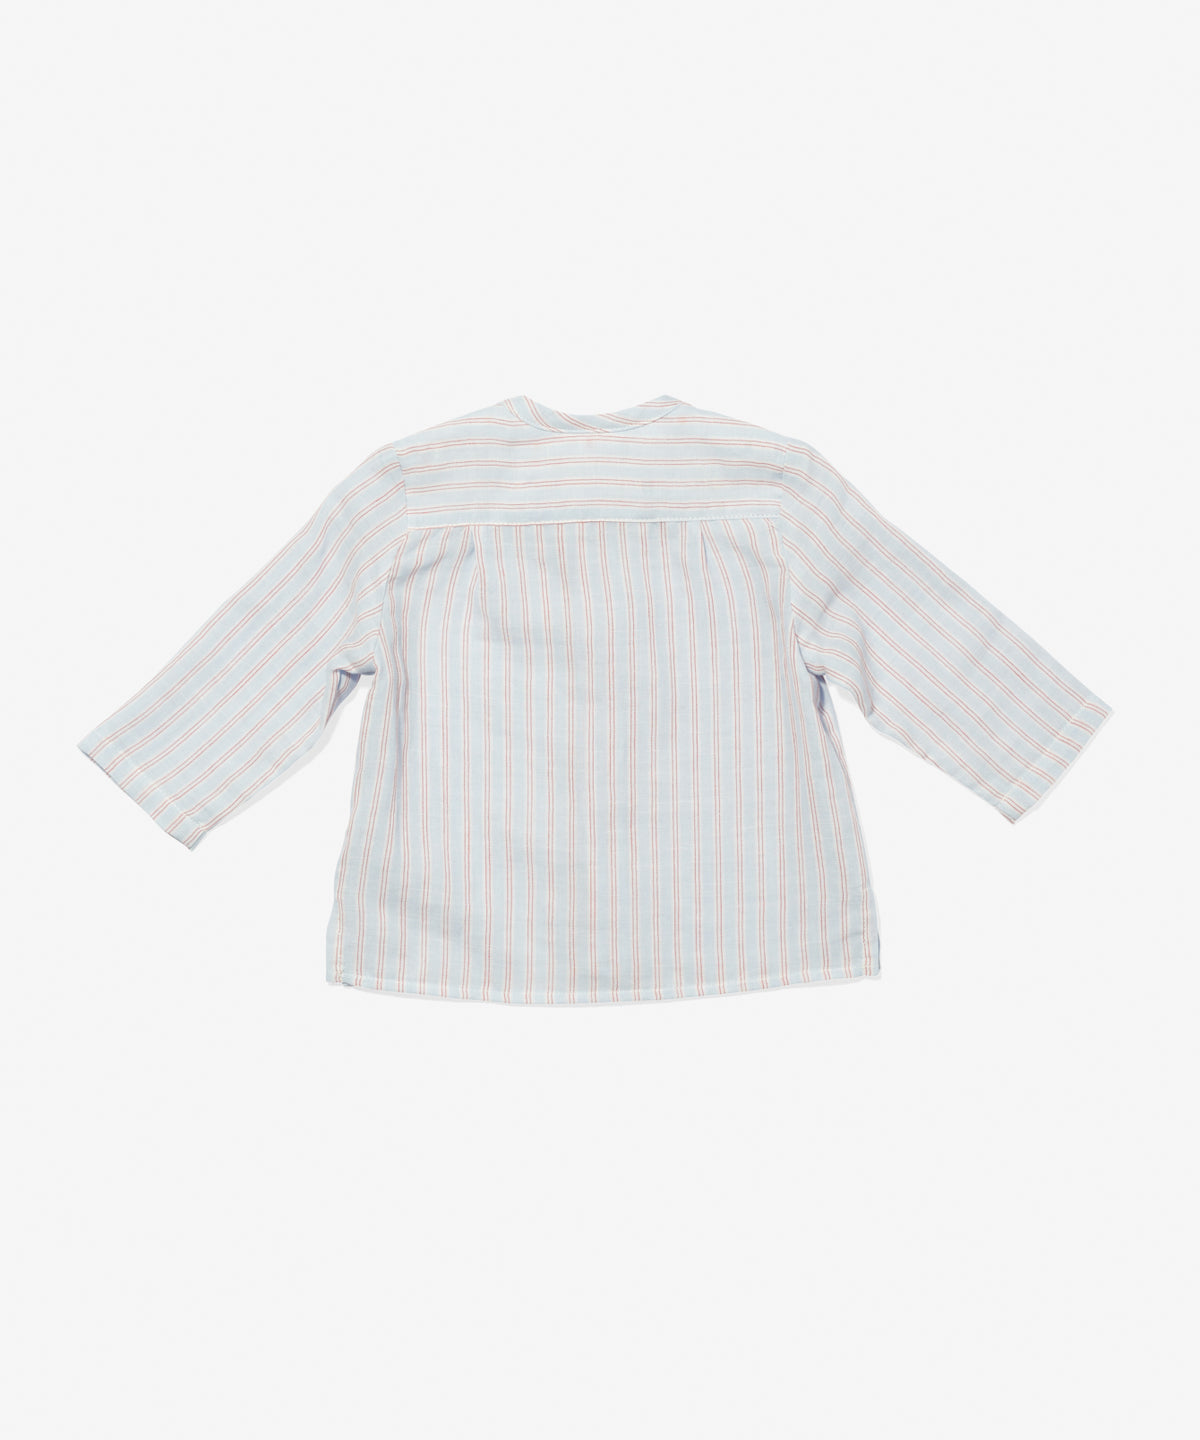 Lupo Baby Shirt, Signature Stripe